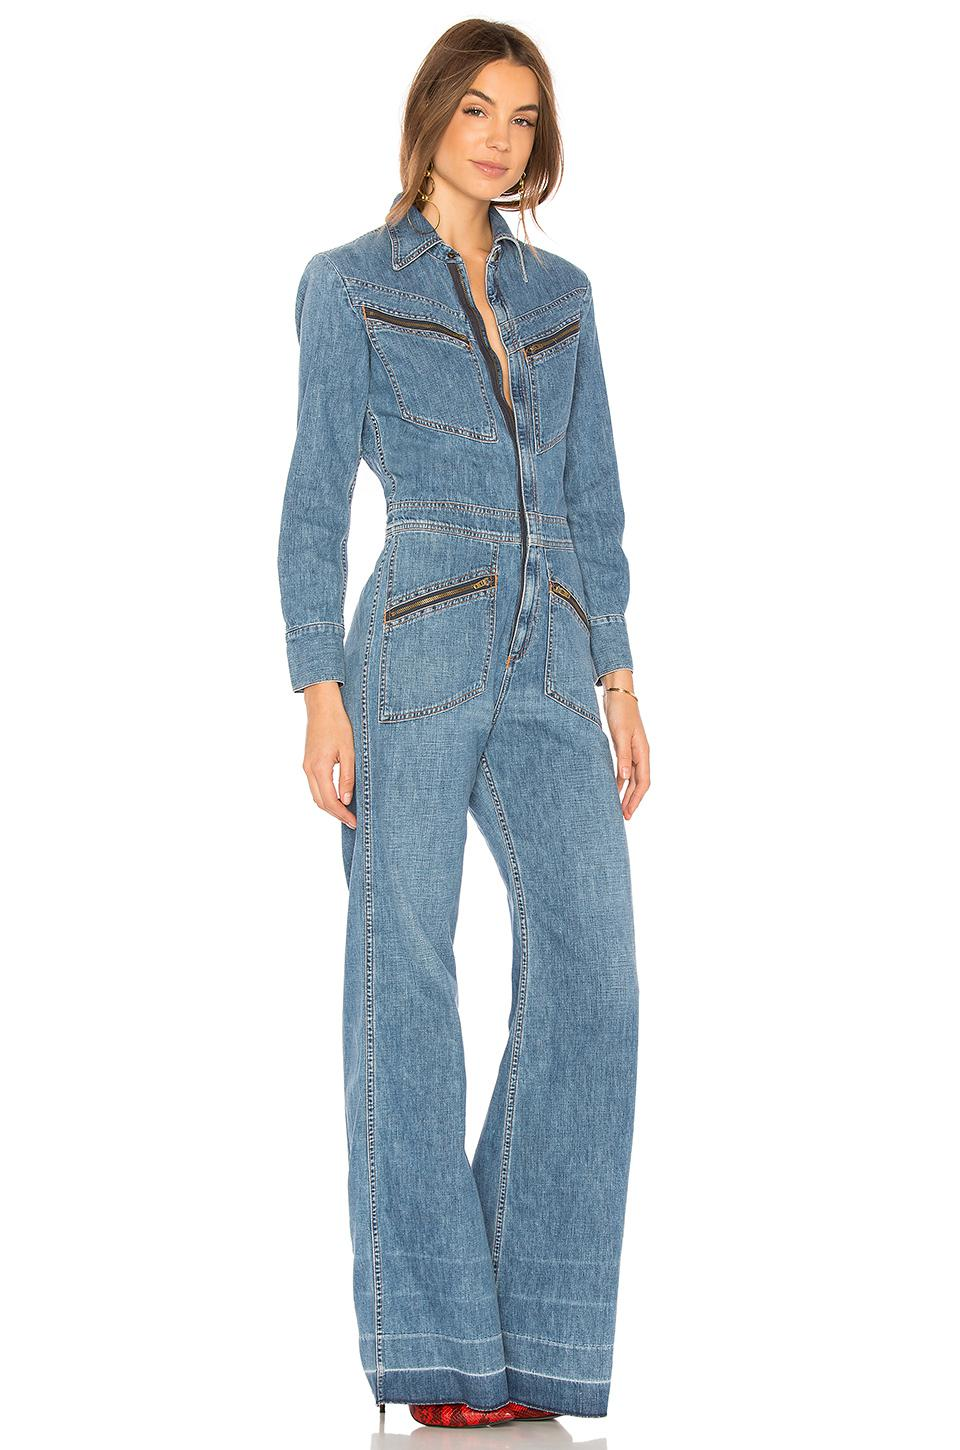 889169213772 Lyst - Citizens of Humanity Farrah 70s Jumpsuit in Blue